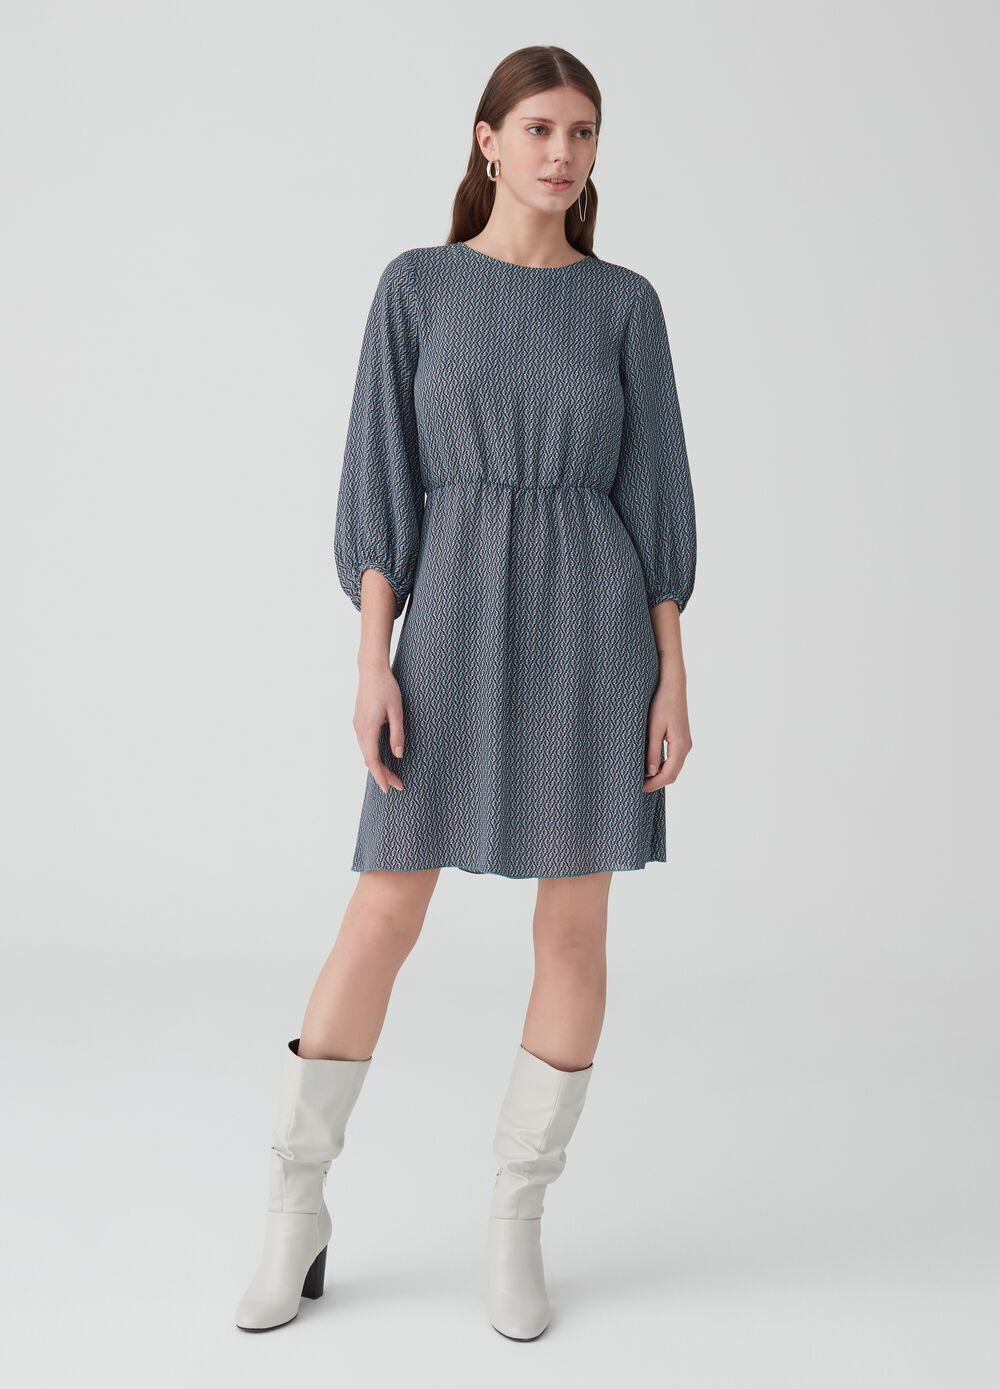 Short dress with three-quarter sleeves